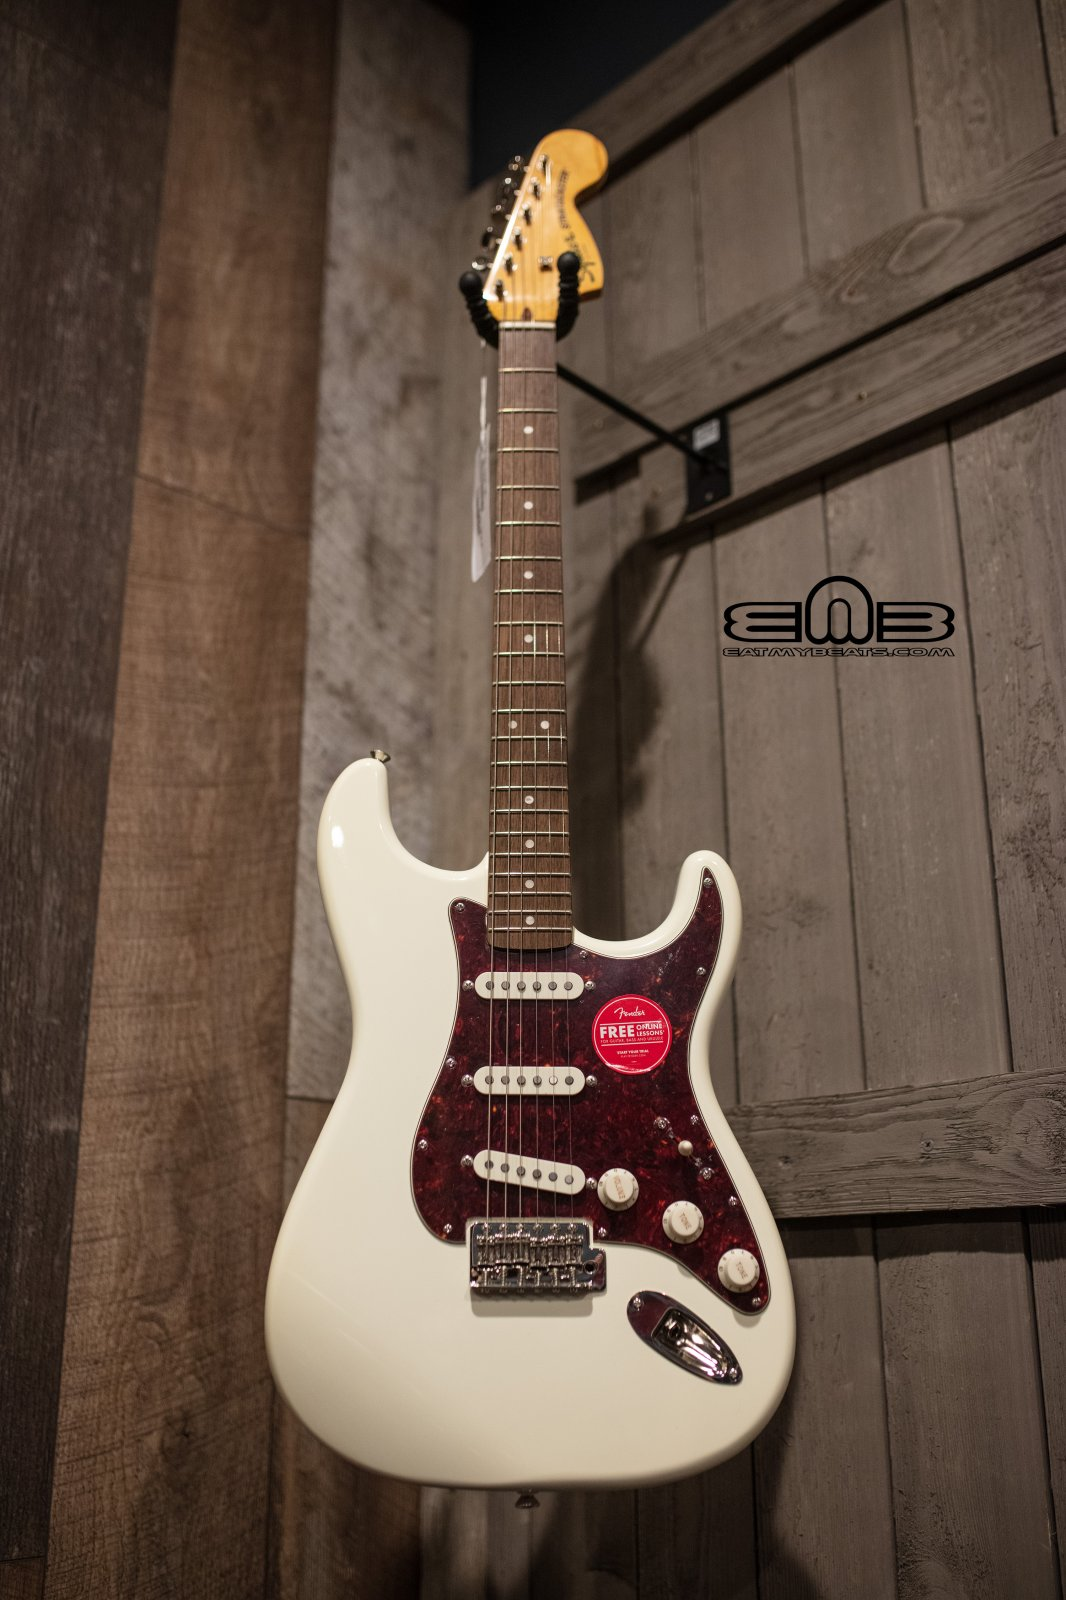 Fender Squier Classic Vibe '70s Stratocaster Guitar, Laurel Fingerboard, Olympic White 0374020501